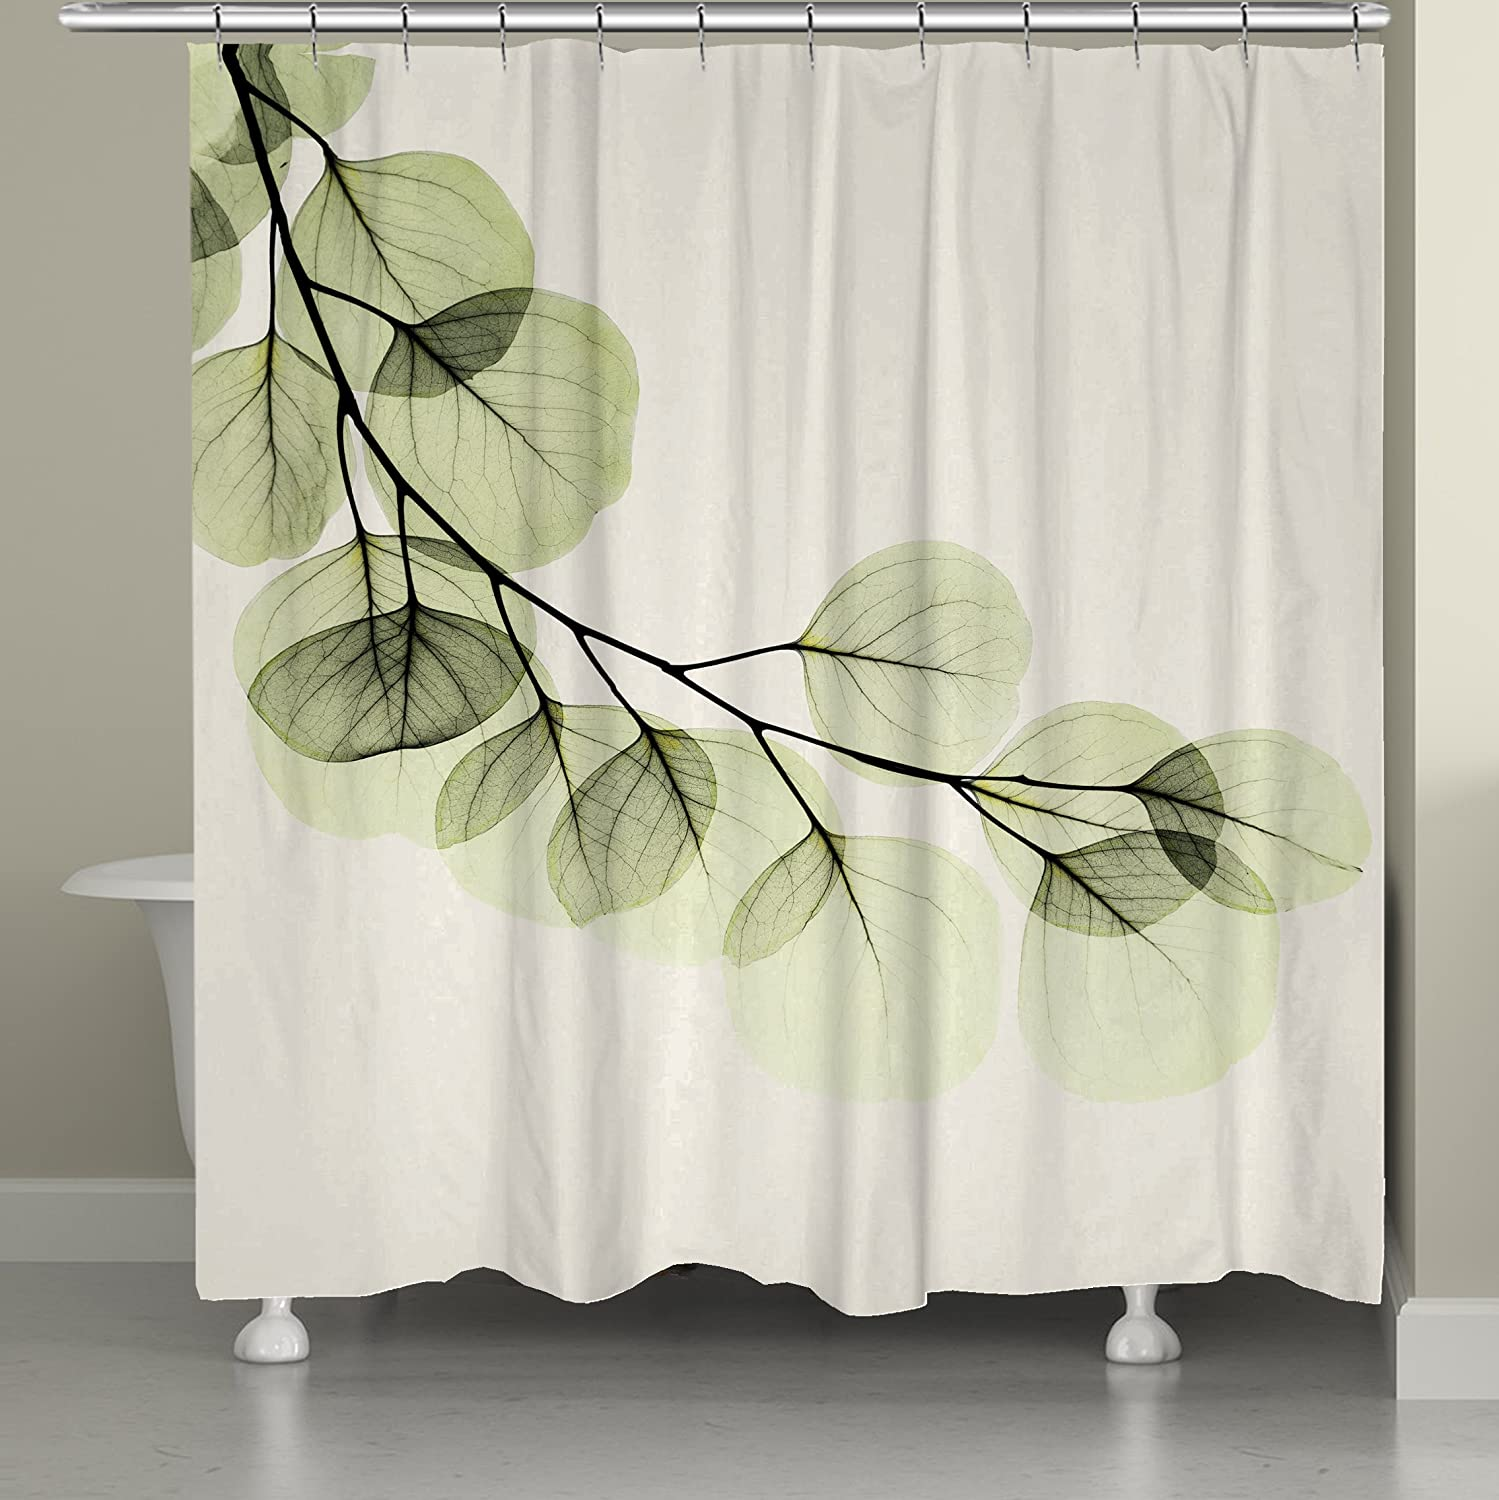 Laural Home Eucalyptus X-Ray Shower Curtain, 71 x 74